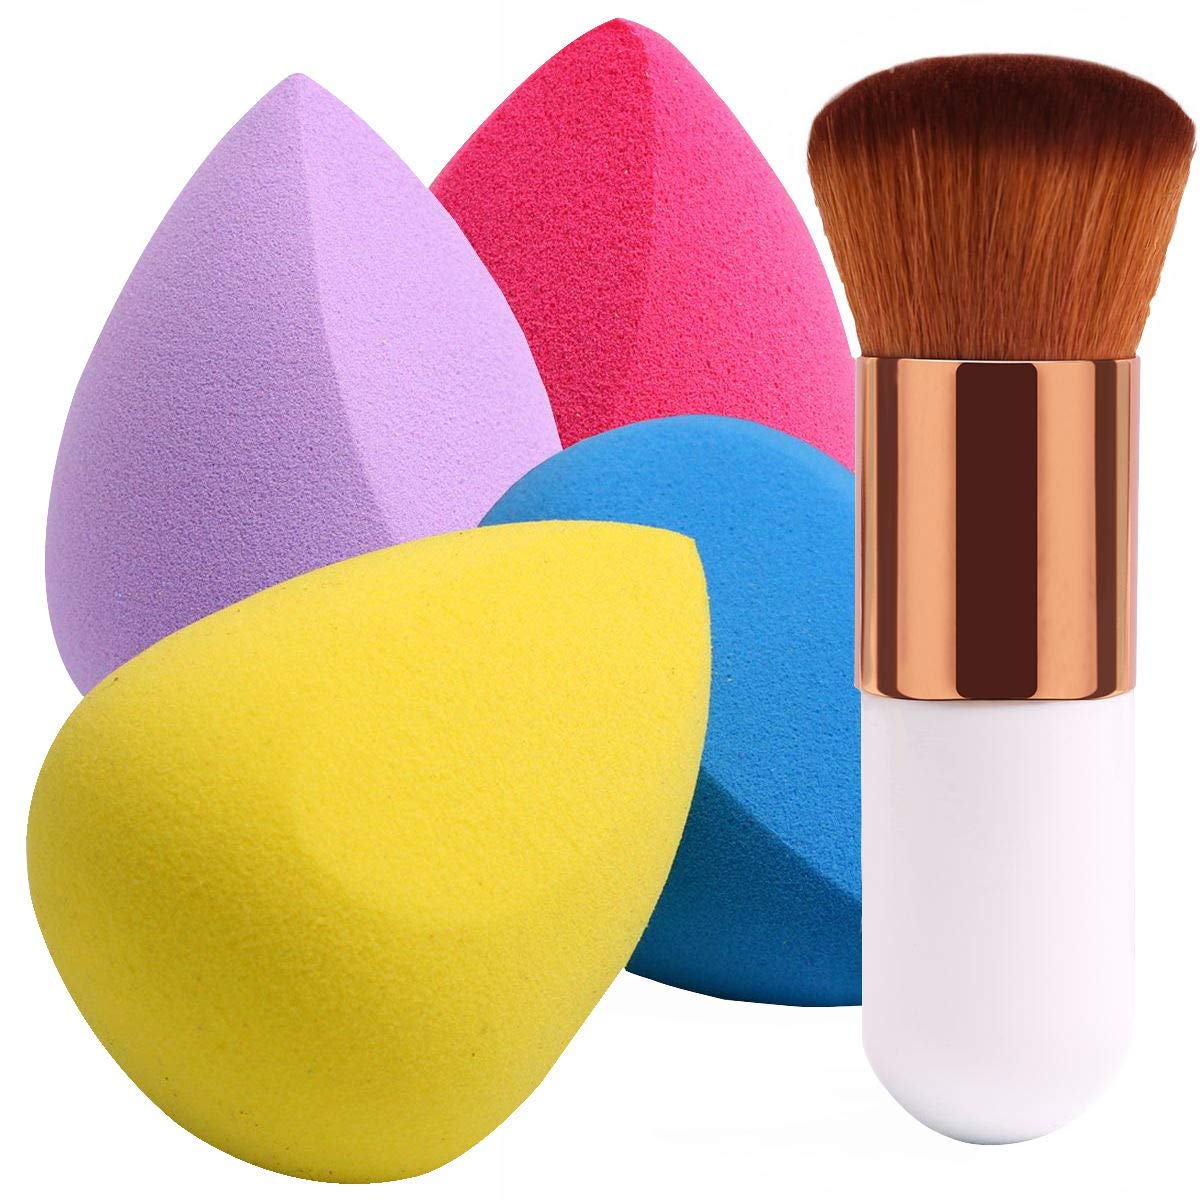 BEAKEY 4+1Pcs Makeup Sponges with Powder Brush, Foundation Blending Sponge for Liquid Cream and Powder, Professional Beauty Sponge Blender & Kabuki Brush